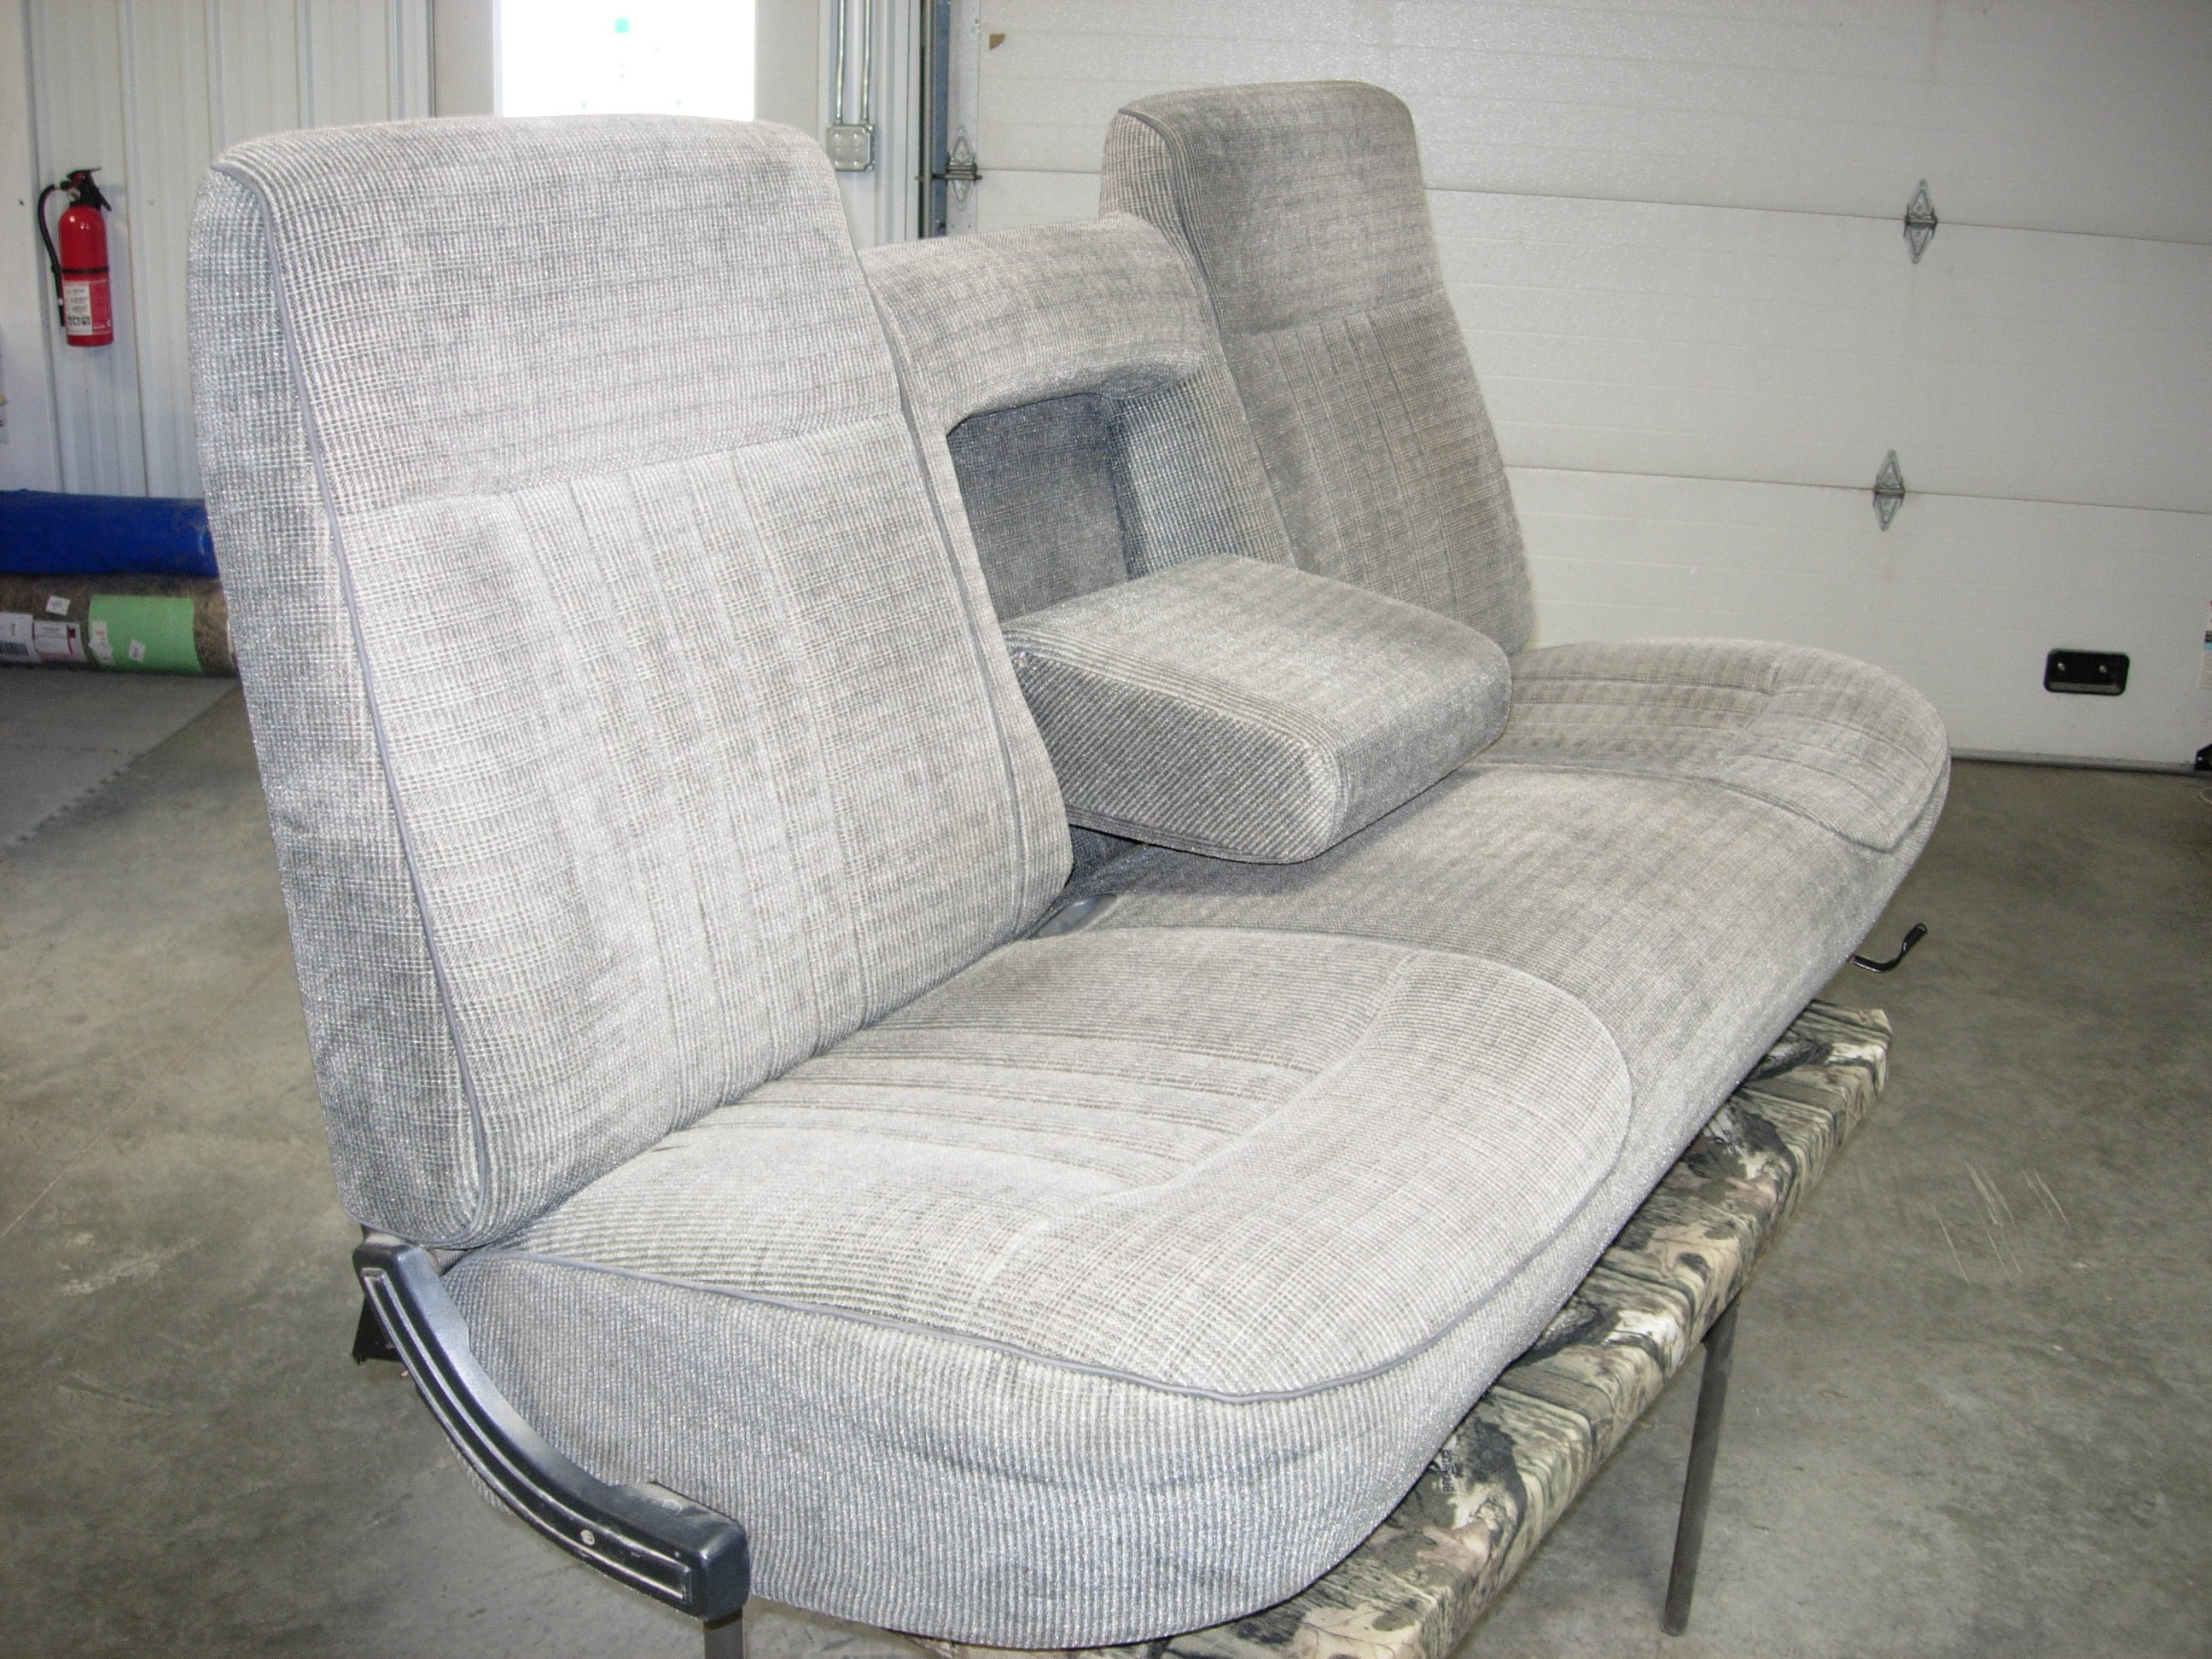 1987 Ford Ranger Bench Seat